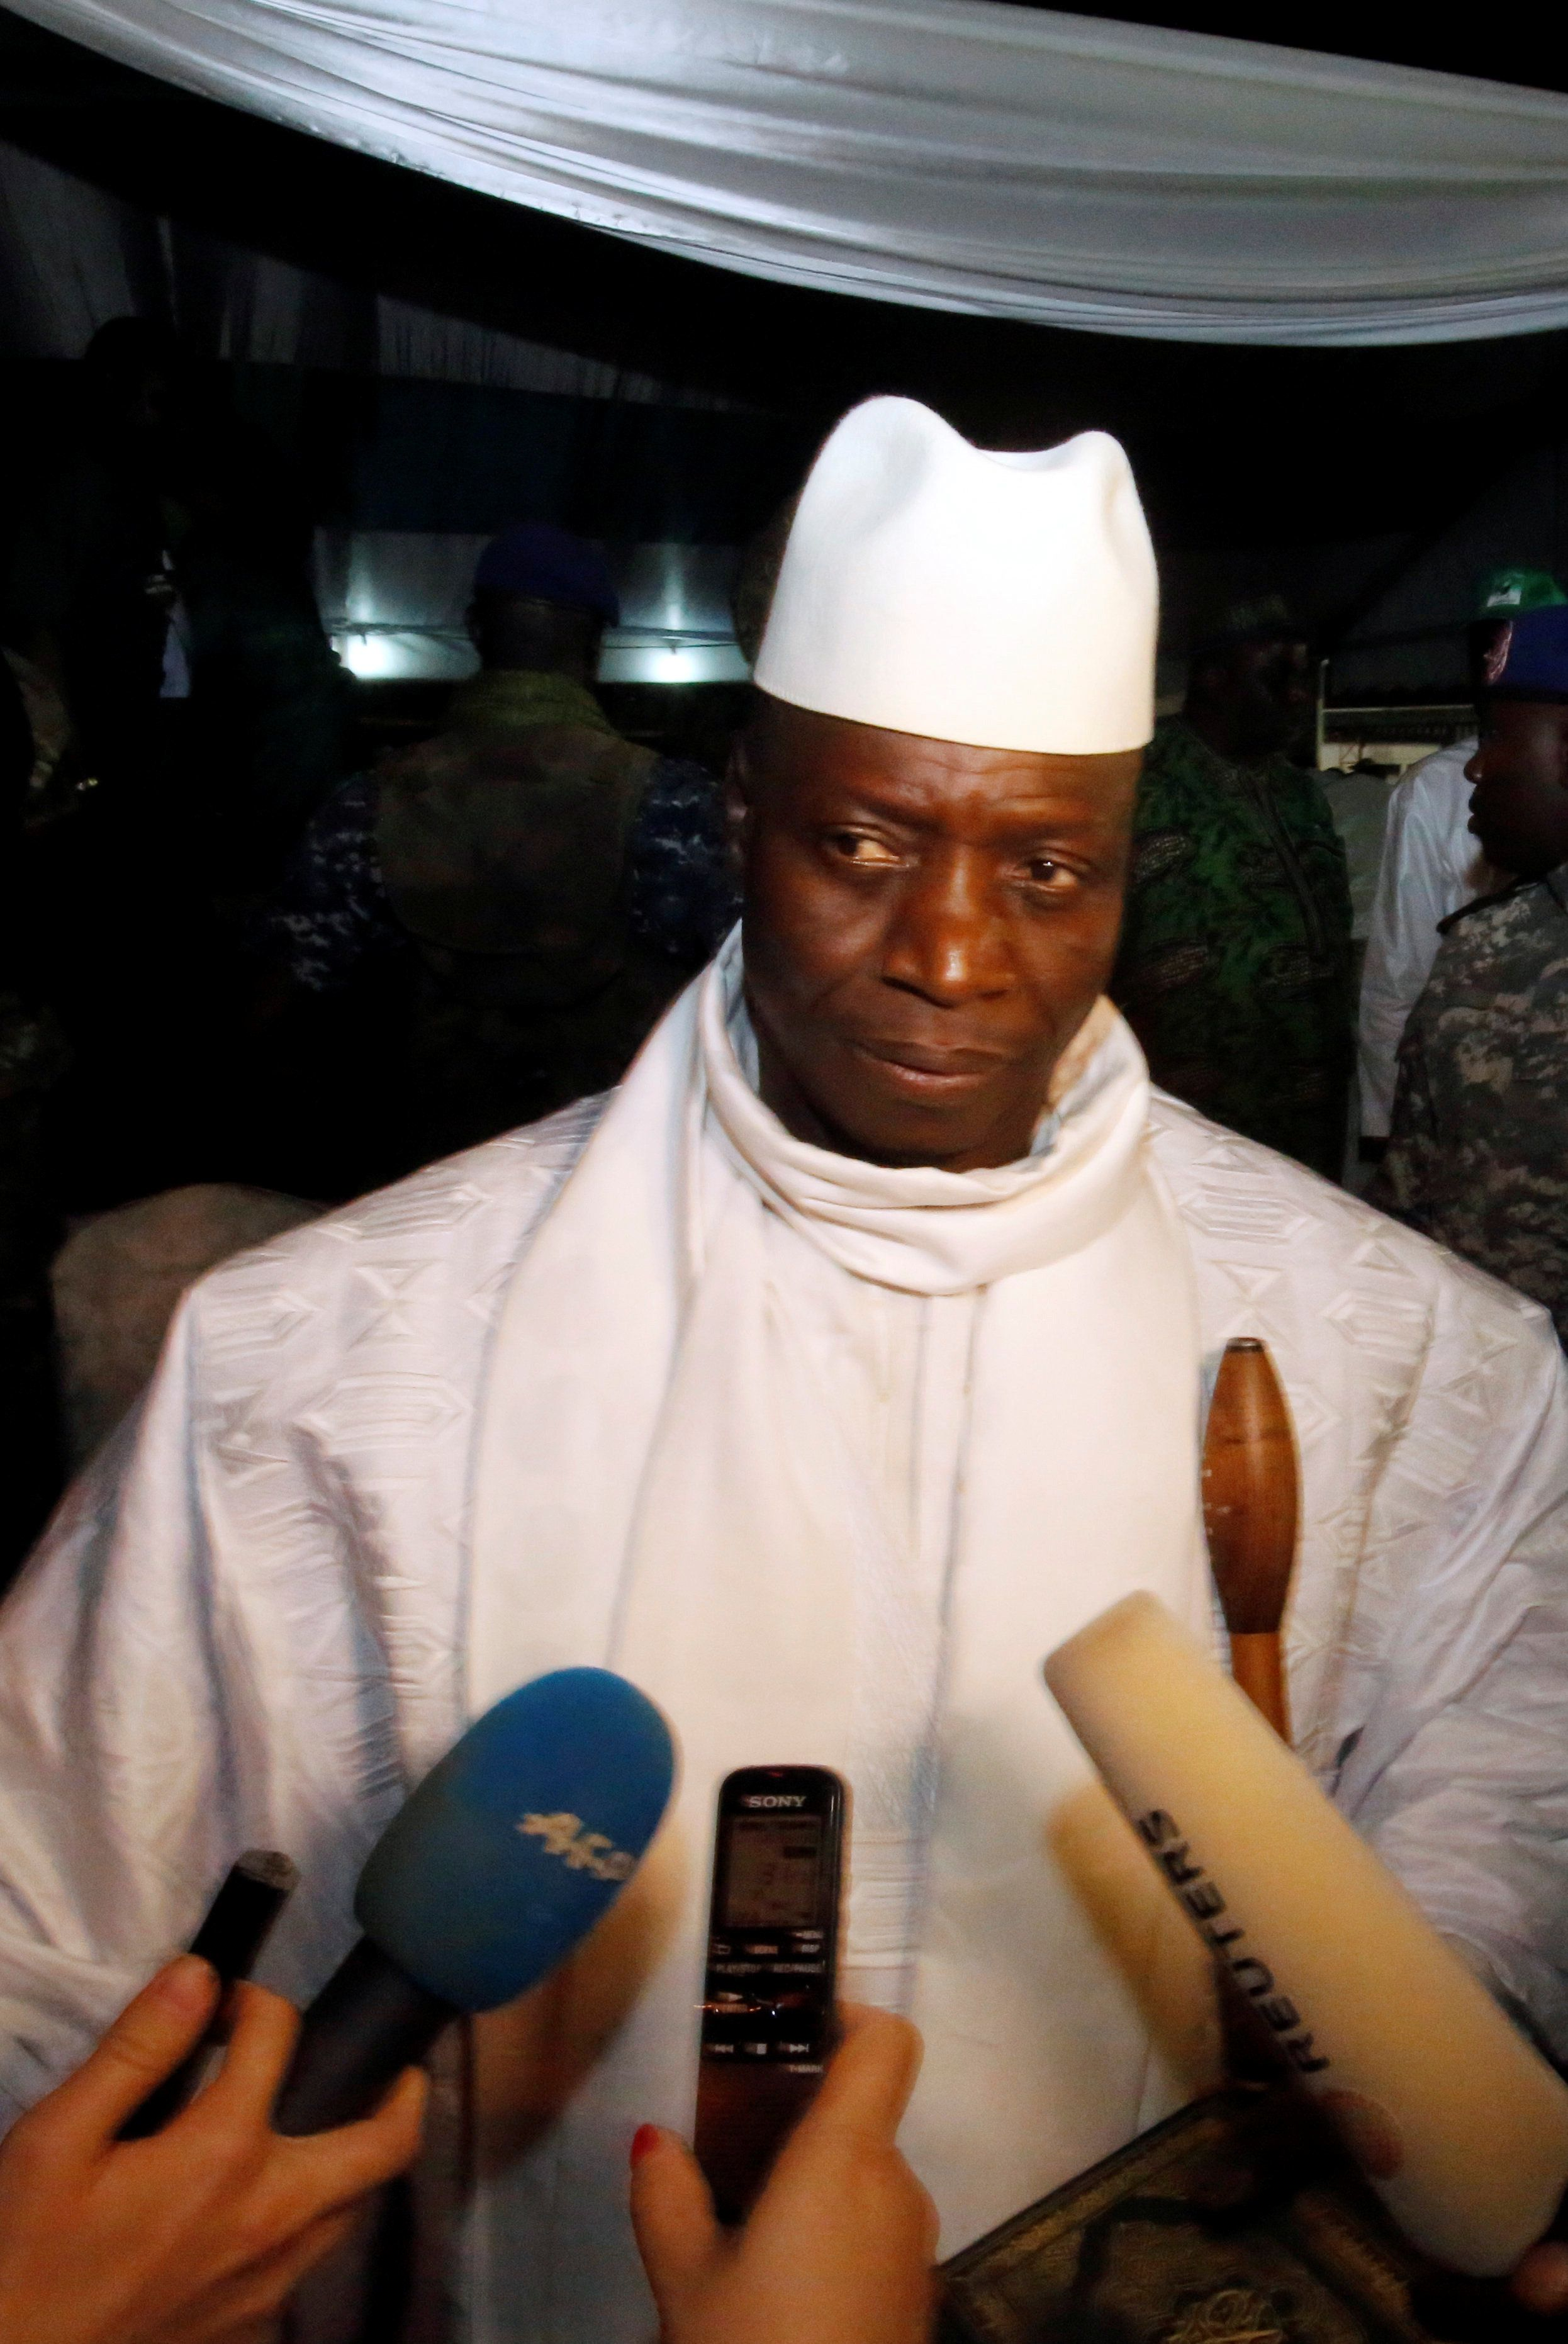 Gambia's President Yahya Jammeh, who is also a presidential candidate for the Alliance for Patriotic Reorientation and Construction (APRC) is seen during an interview aftera a rally in Banjul, Gambia November 29, 2016. Picture taken November 29, 2016. REUTERS/ Thierry Gouegnon.